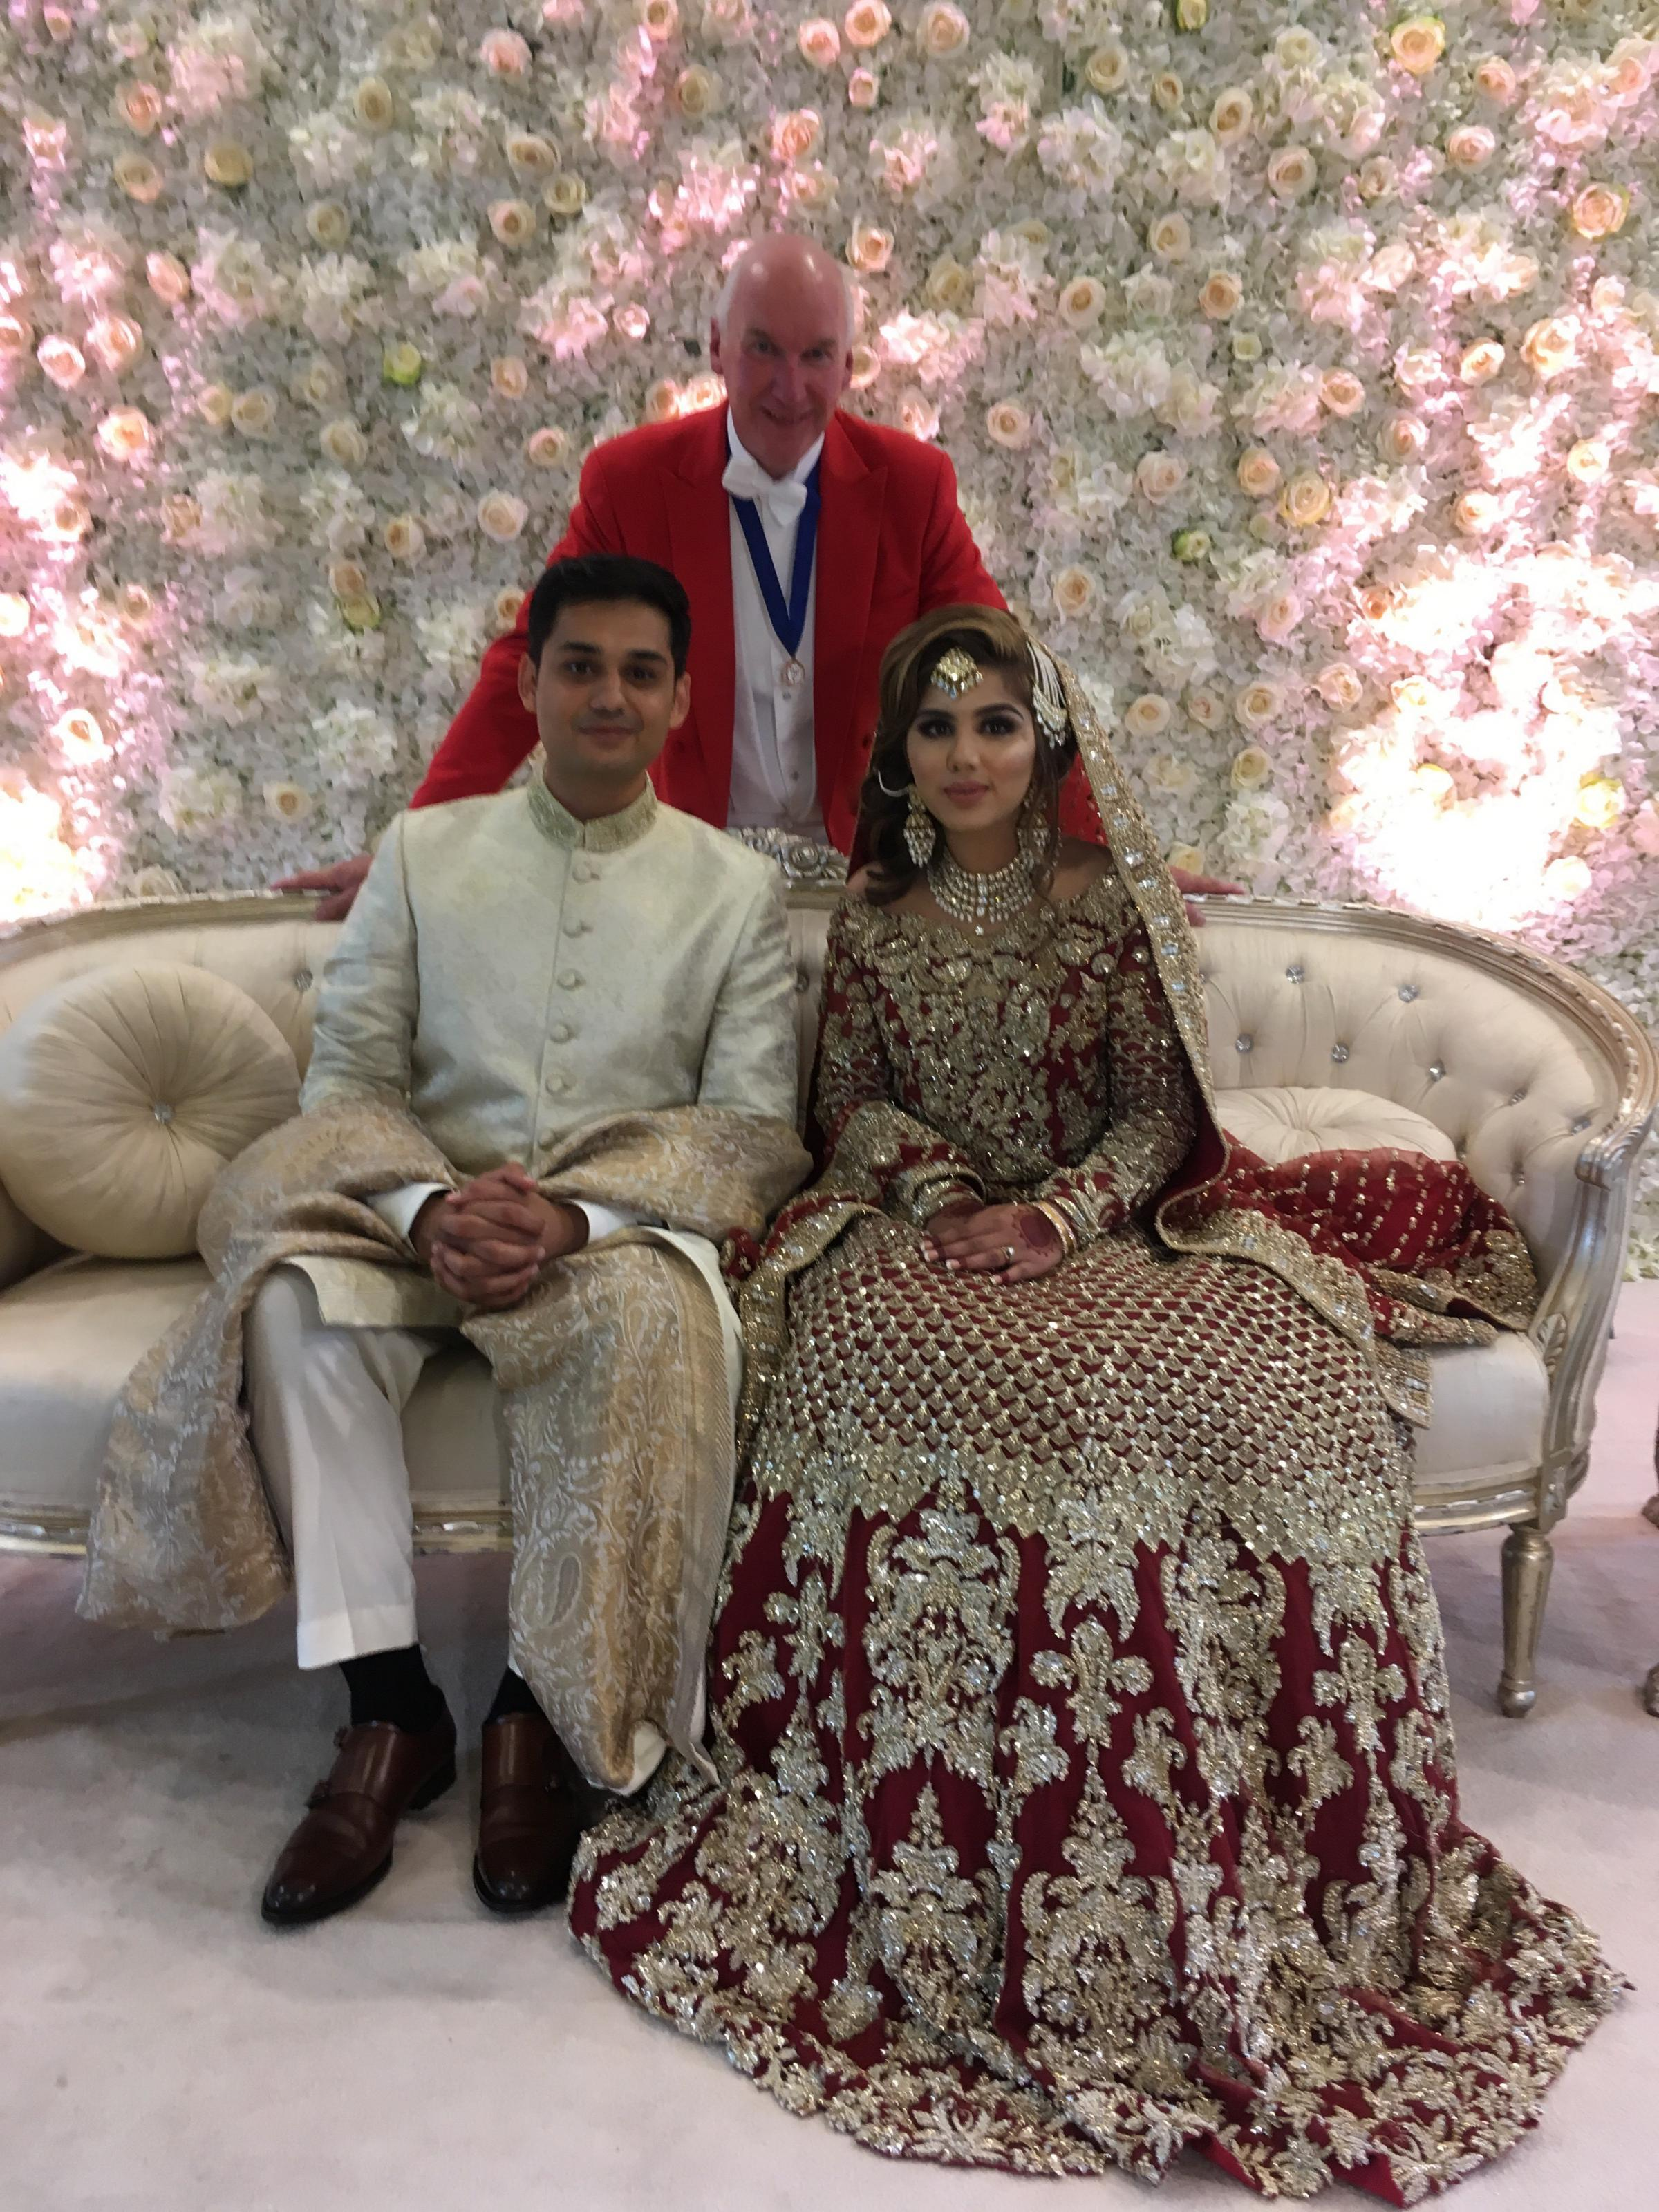 George Pye who has been shortlisted for a prestigious Asian Wedding Award. The winners will be announced on October 29 at the Mercure Manchester Piccadilly Hotel